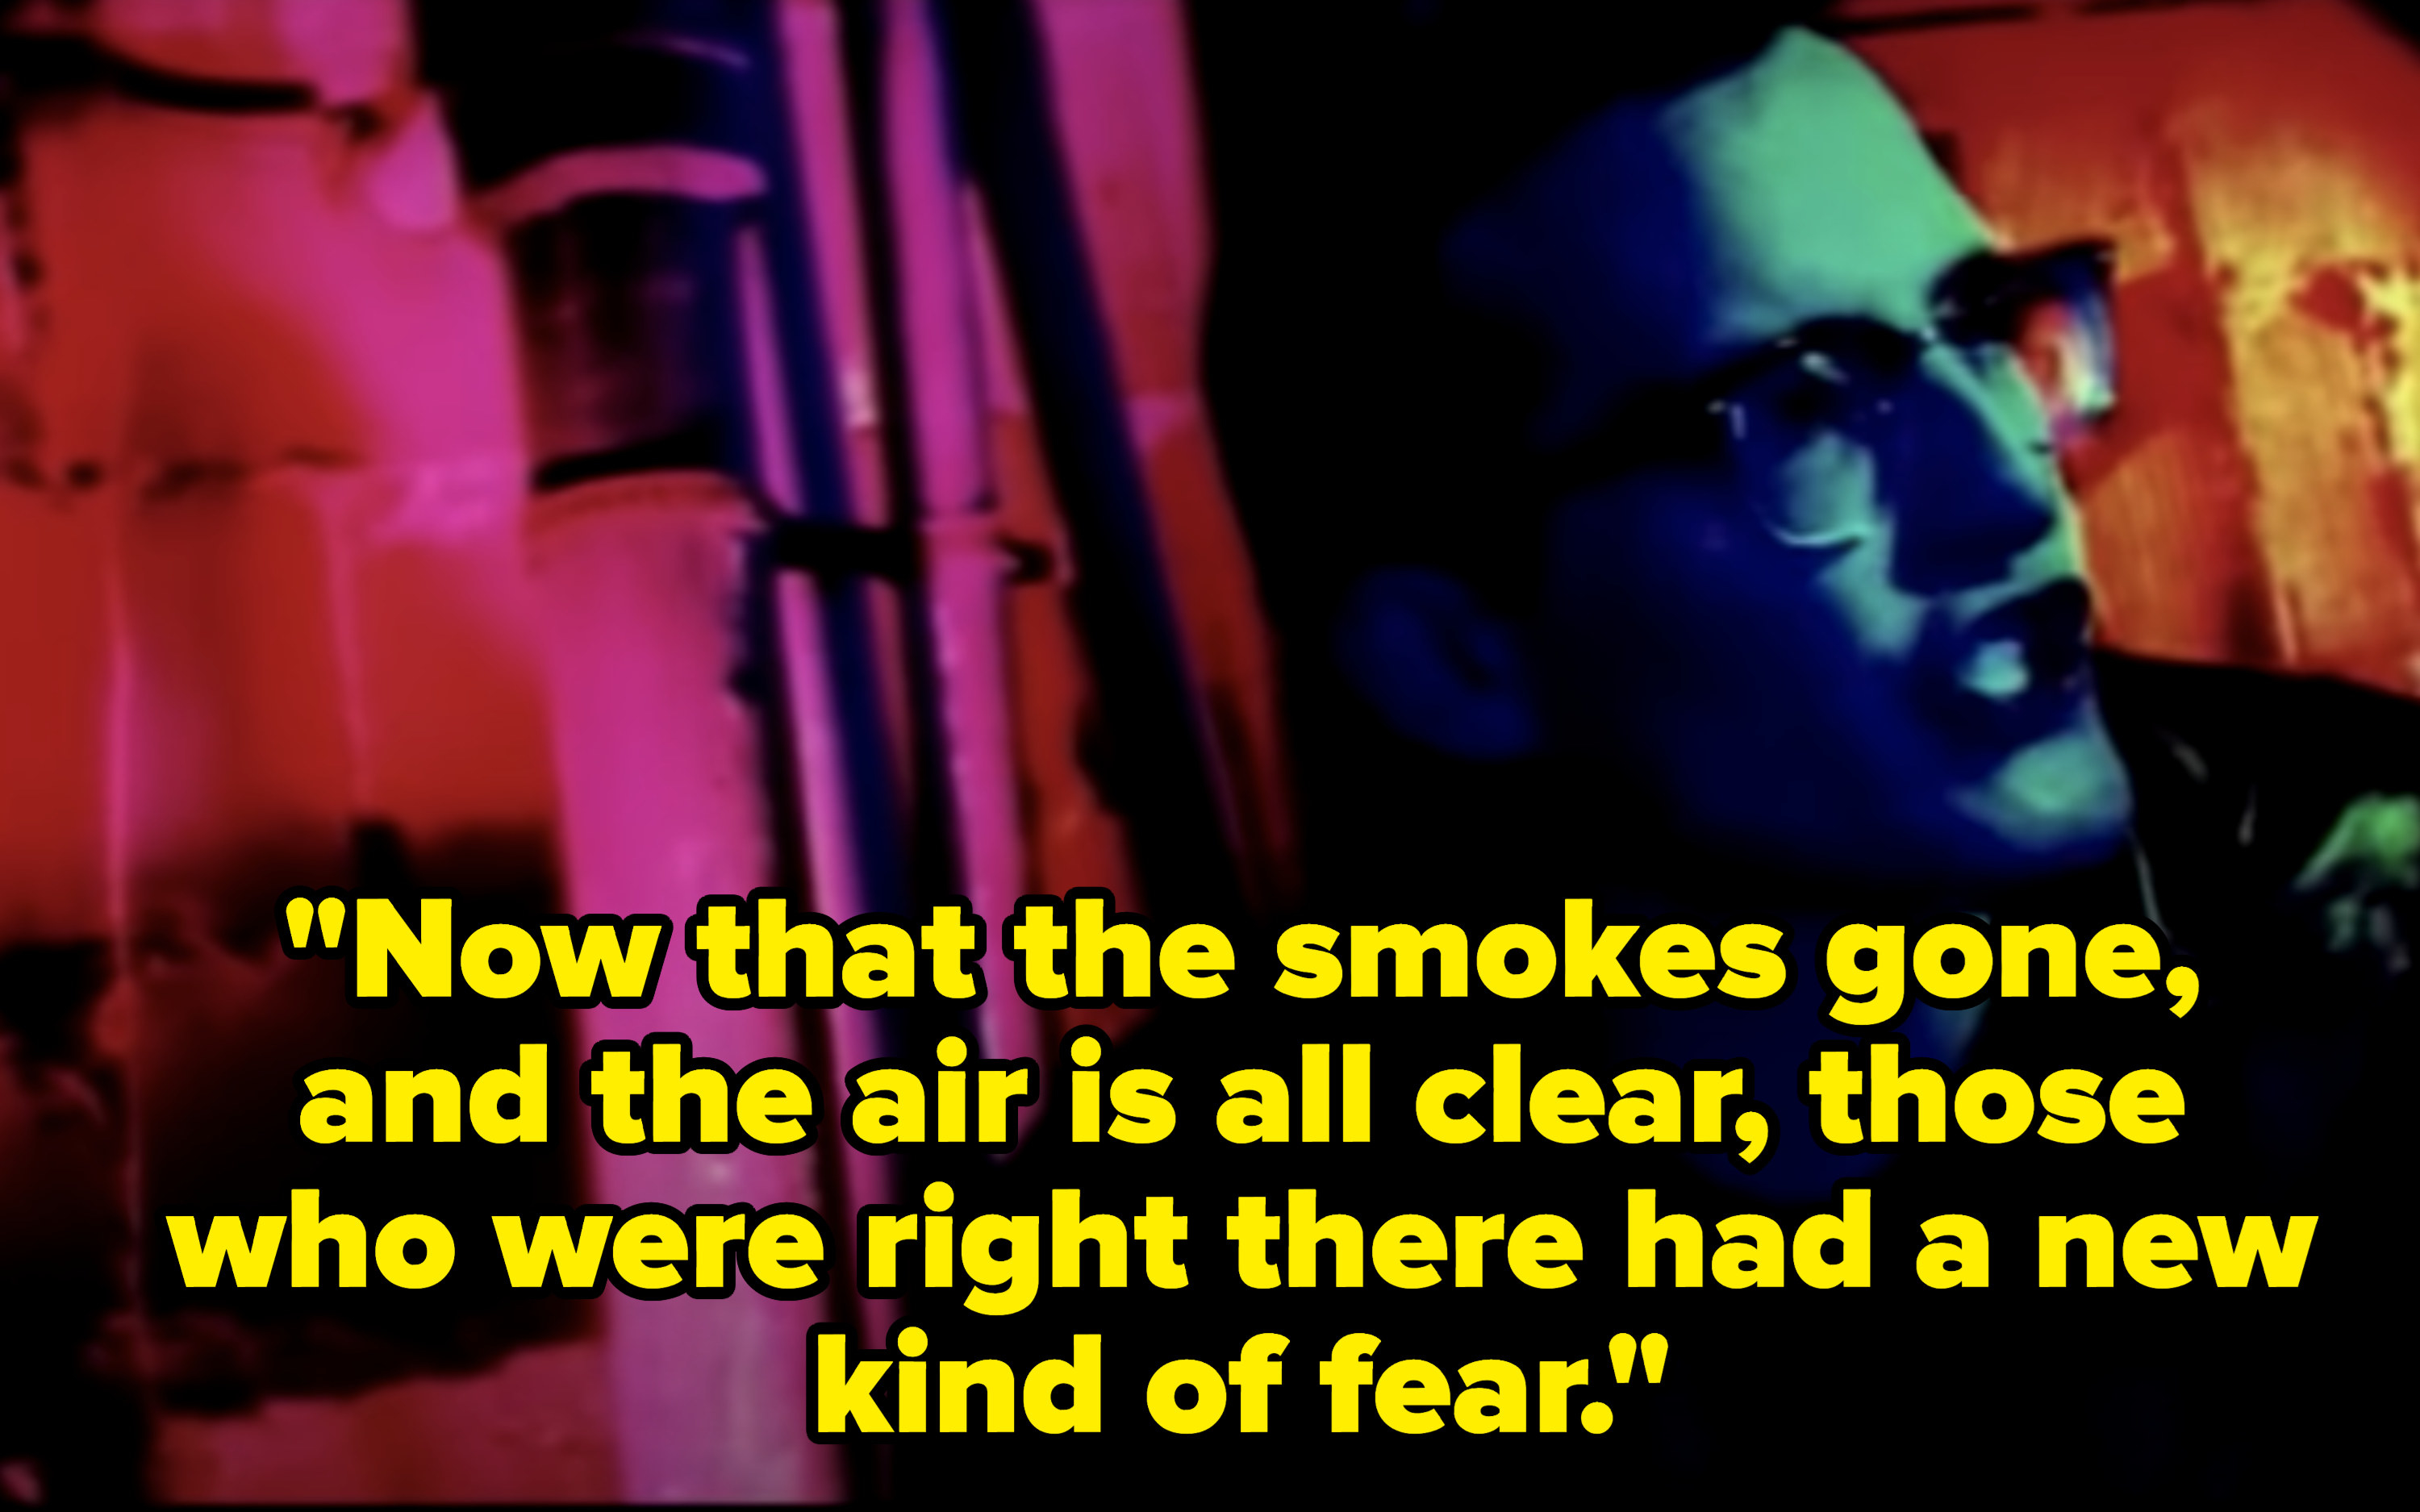 Lyrics: Now that the smokes gone, and the air is all clear, those who were right there had a new kind of fear.